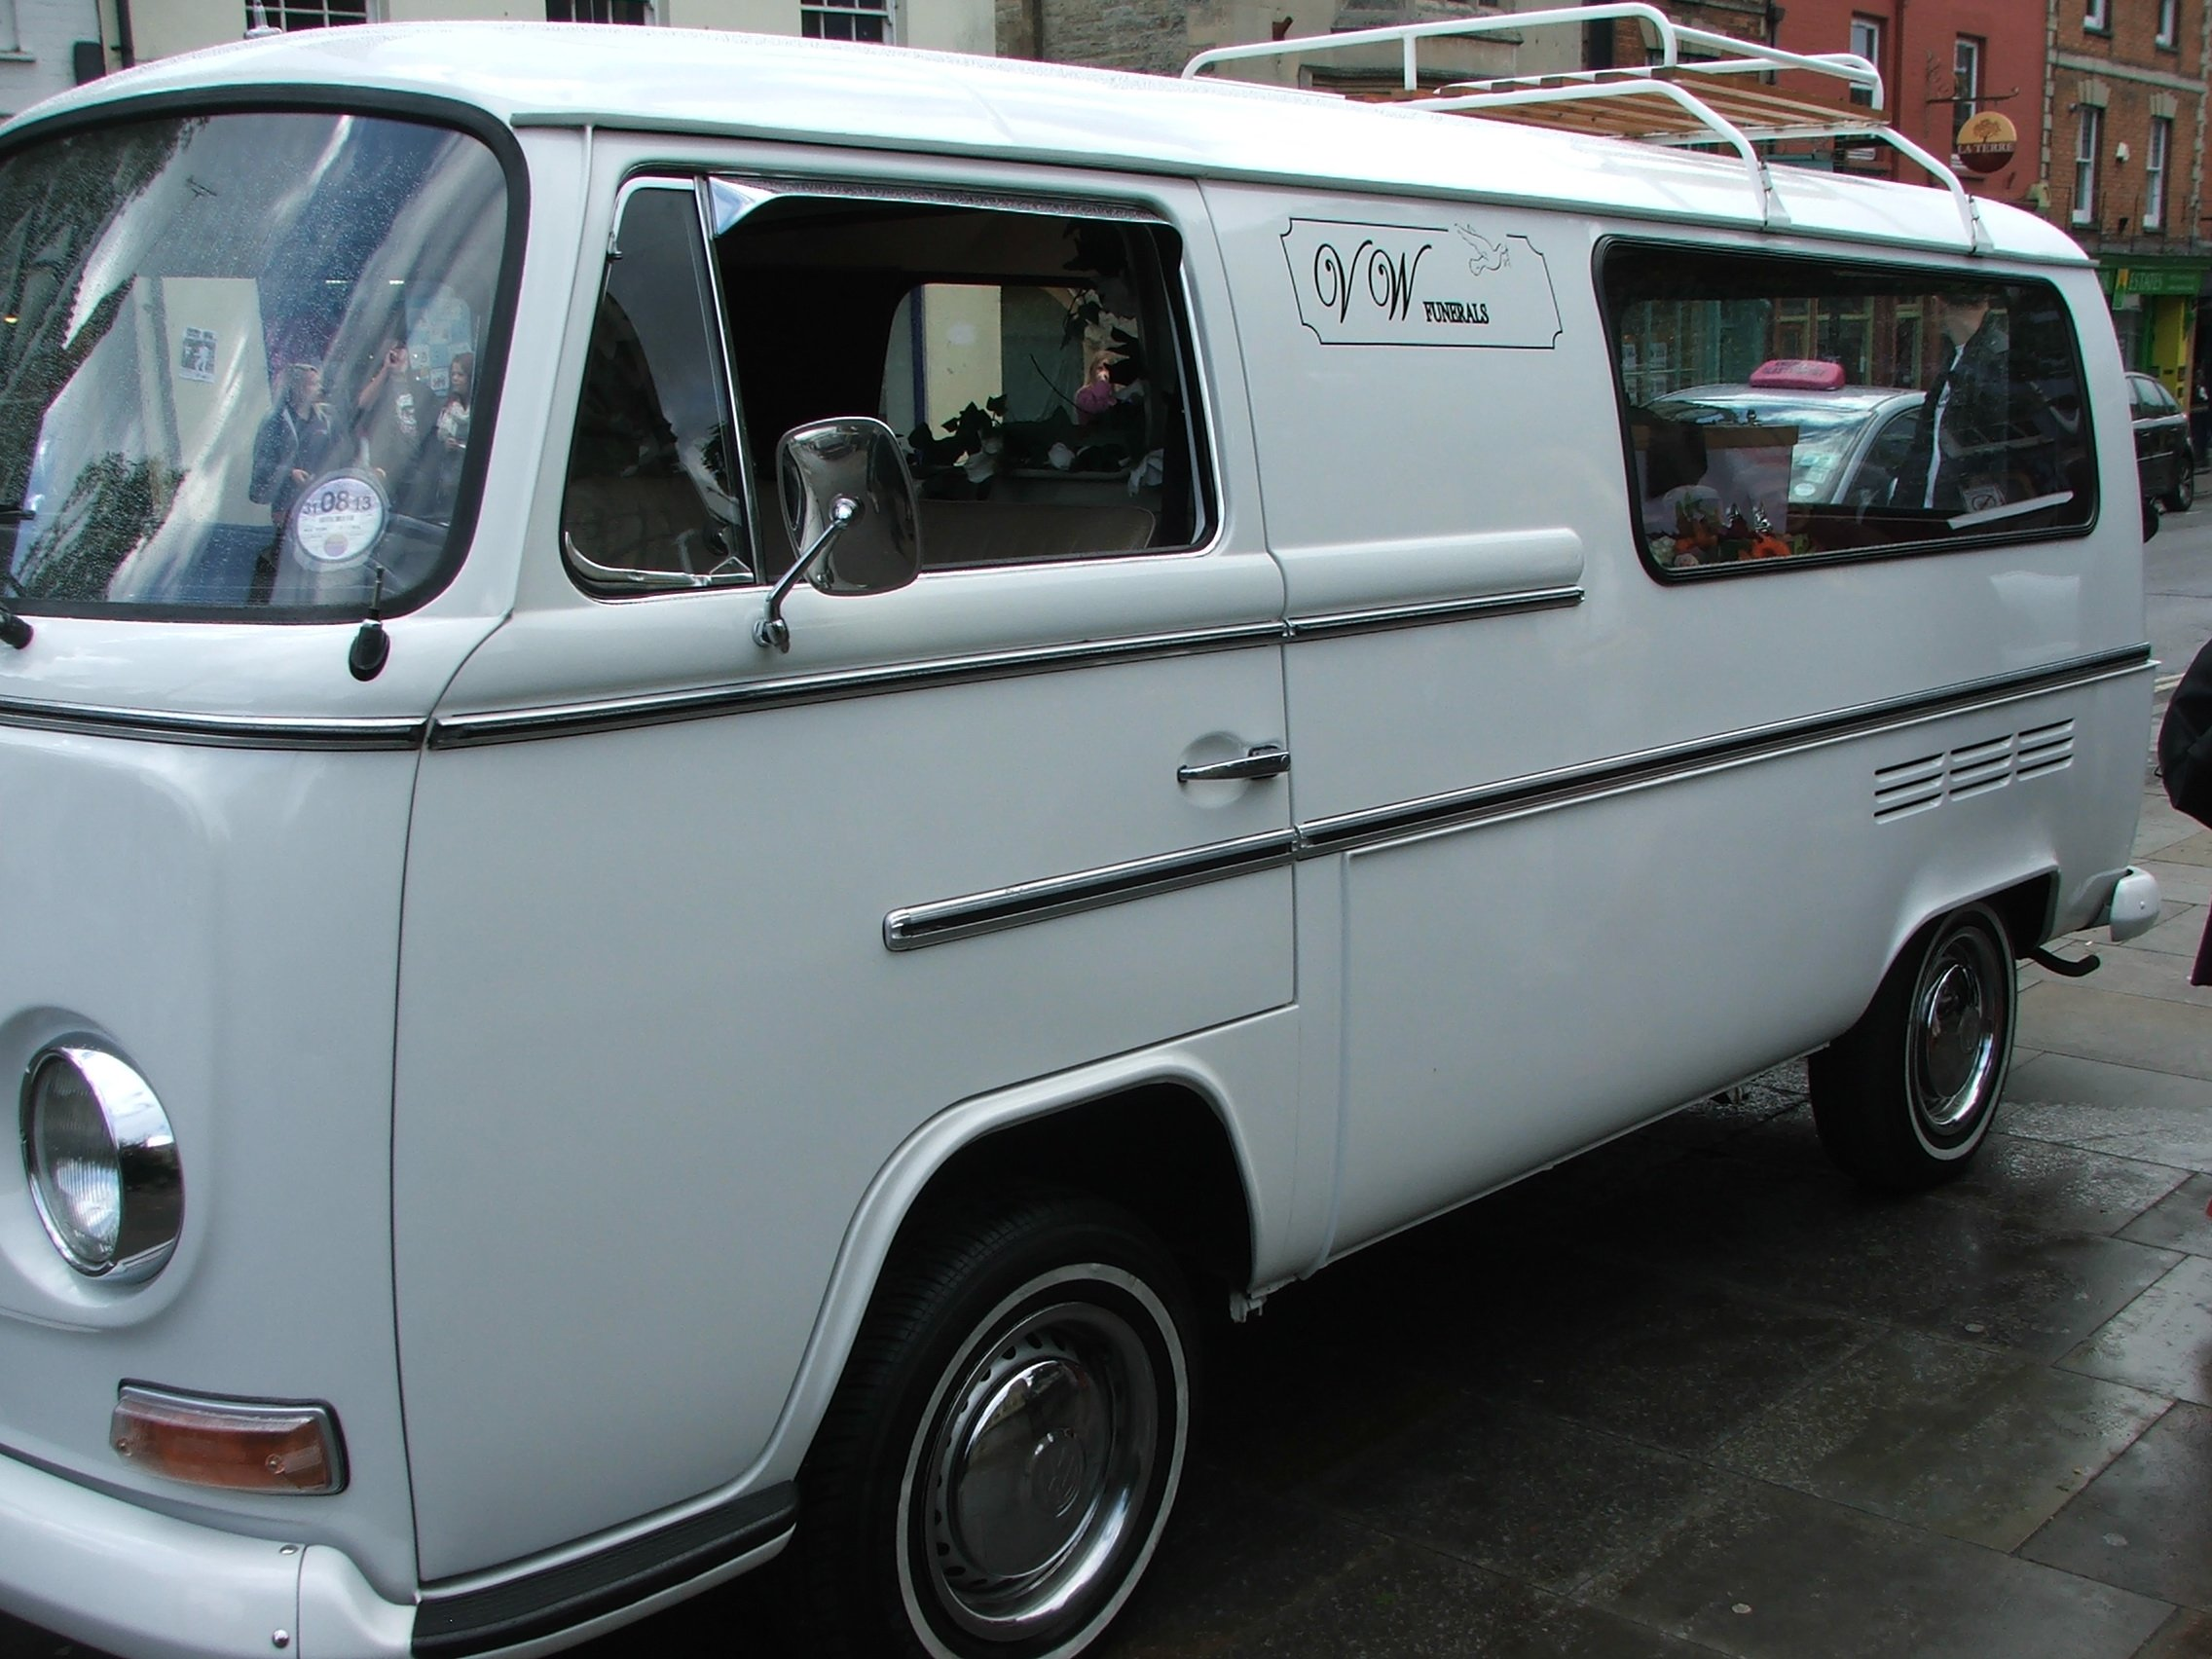 White van hearse